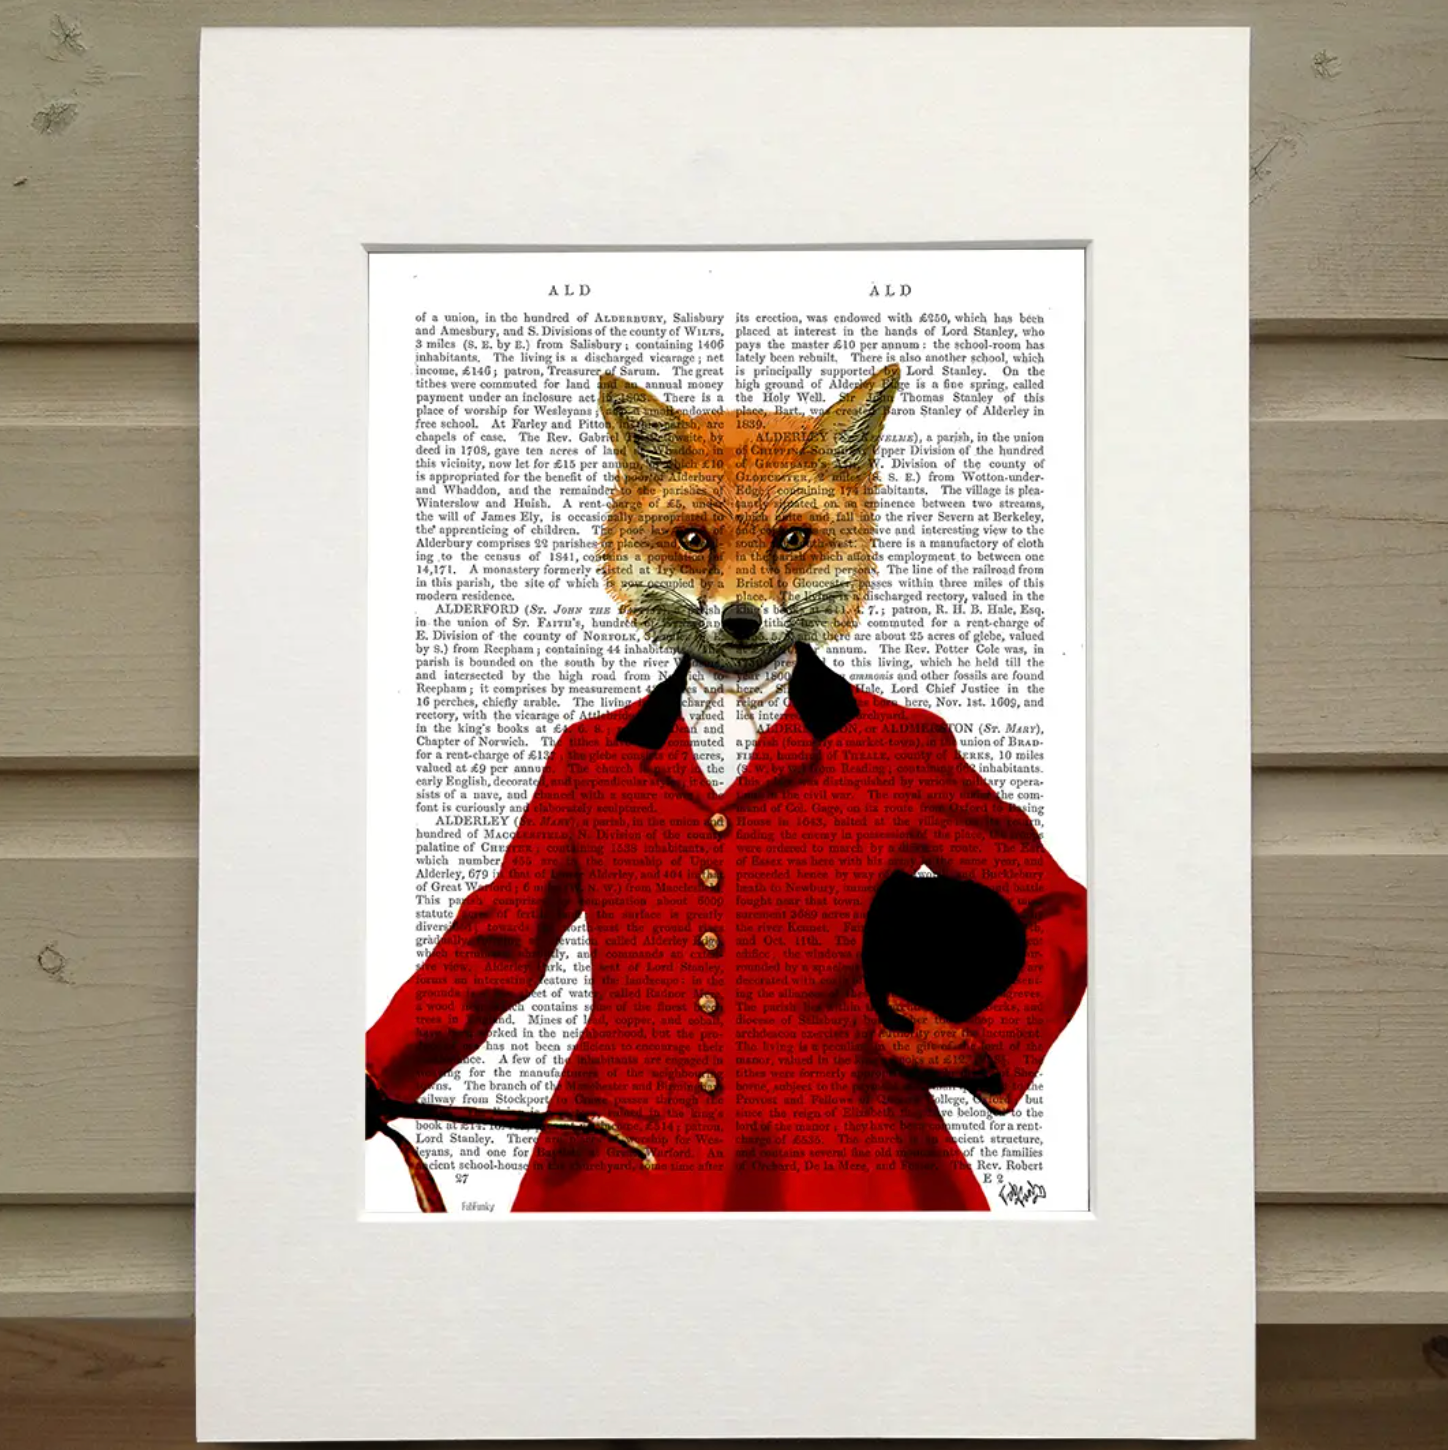 A page from a book is framed with mat. Printed over the page is a figure wearing an old hunting outfit with a red coat. In their left hand is the crop and tucked under their right arm is their riding helmet. Instead of the head of a person they have the head of a fox. This image is a portrait of the fox figure, cropped at the figure's waist.